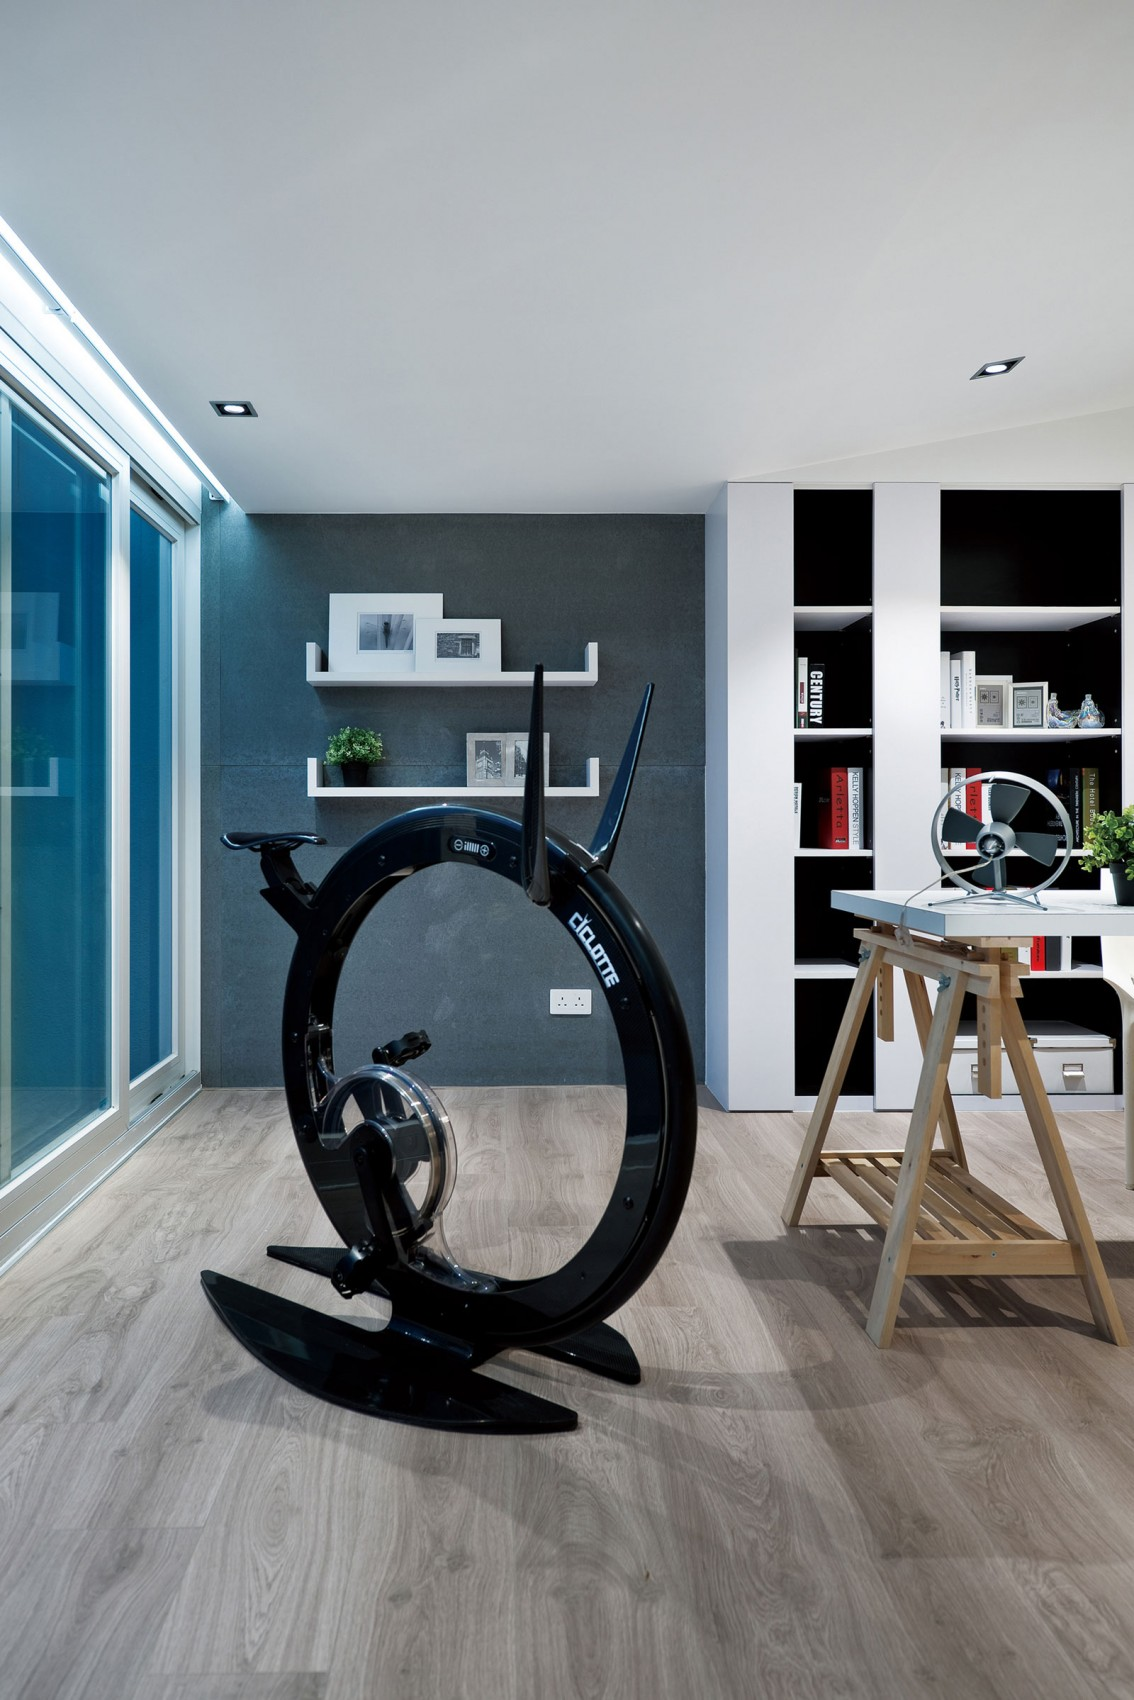 Ciclotte Bicycle - Modern remodel in hong kong with a ferrari as focus